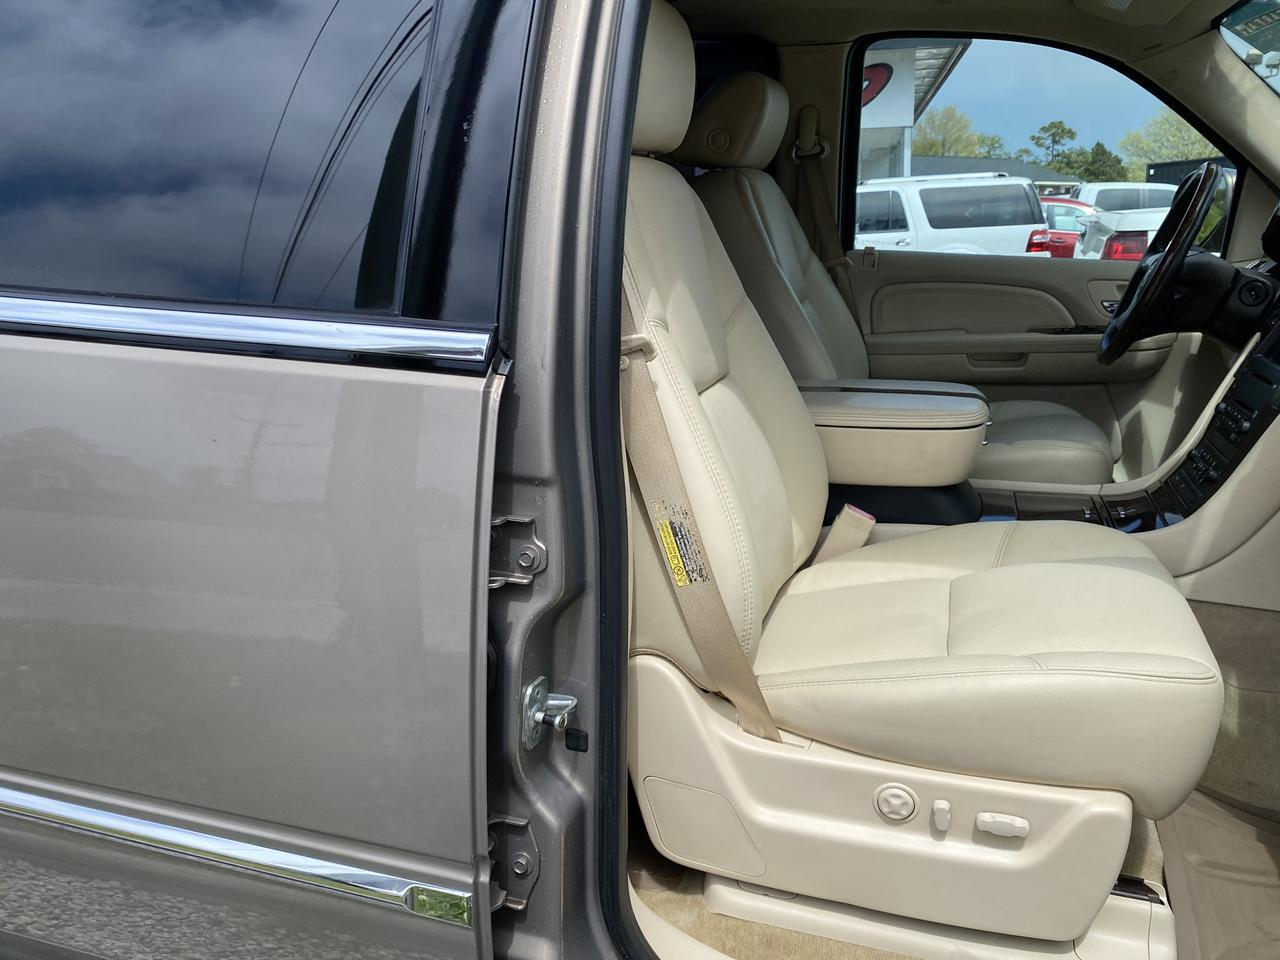 2007 CADILLAC ESCALADE ESV, WARRANTY, LEATHER, NAV, HEATED/COOLED SEATS, DVD PLAYER, FULLY LOADED, CLEAN CARFAX, LOW MILES! Norfolk VA